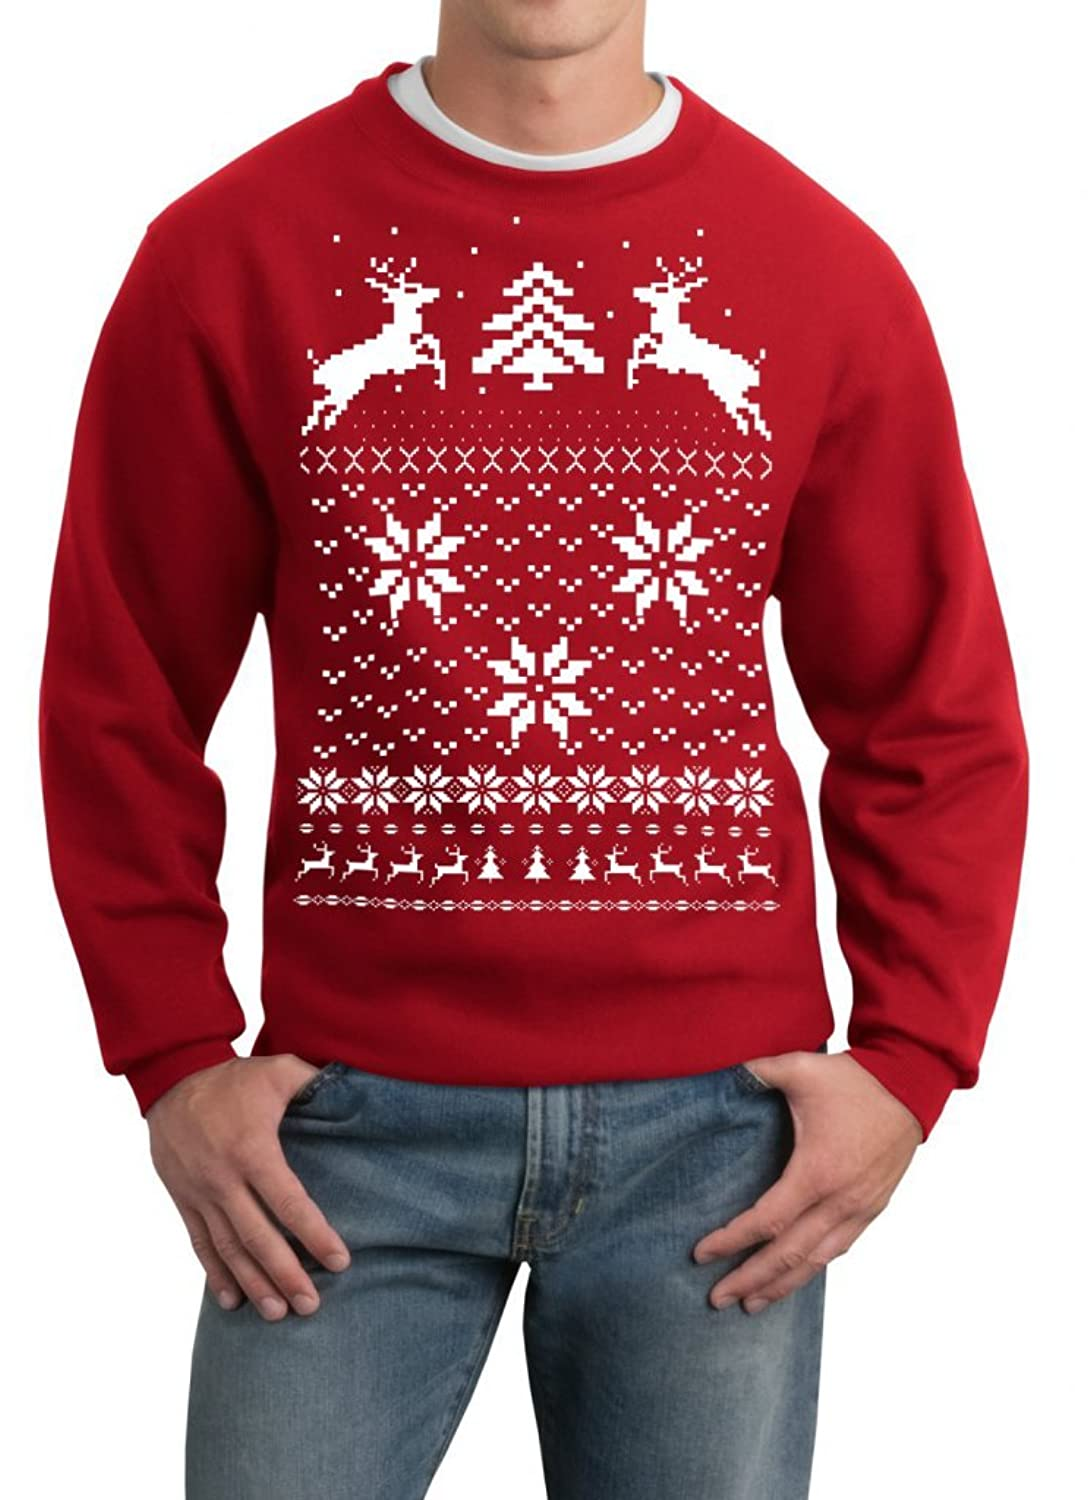 Mens ugly christmas sweaters xxl